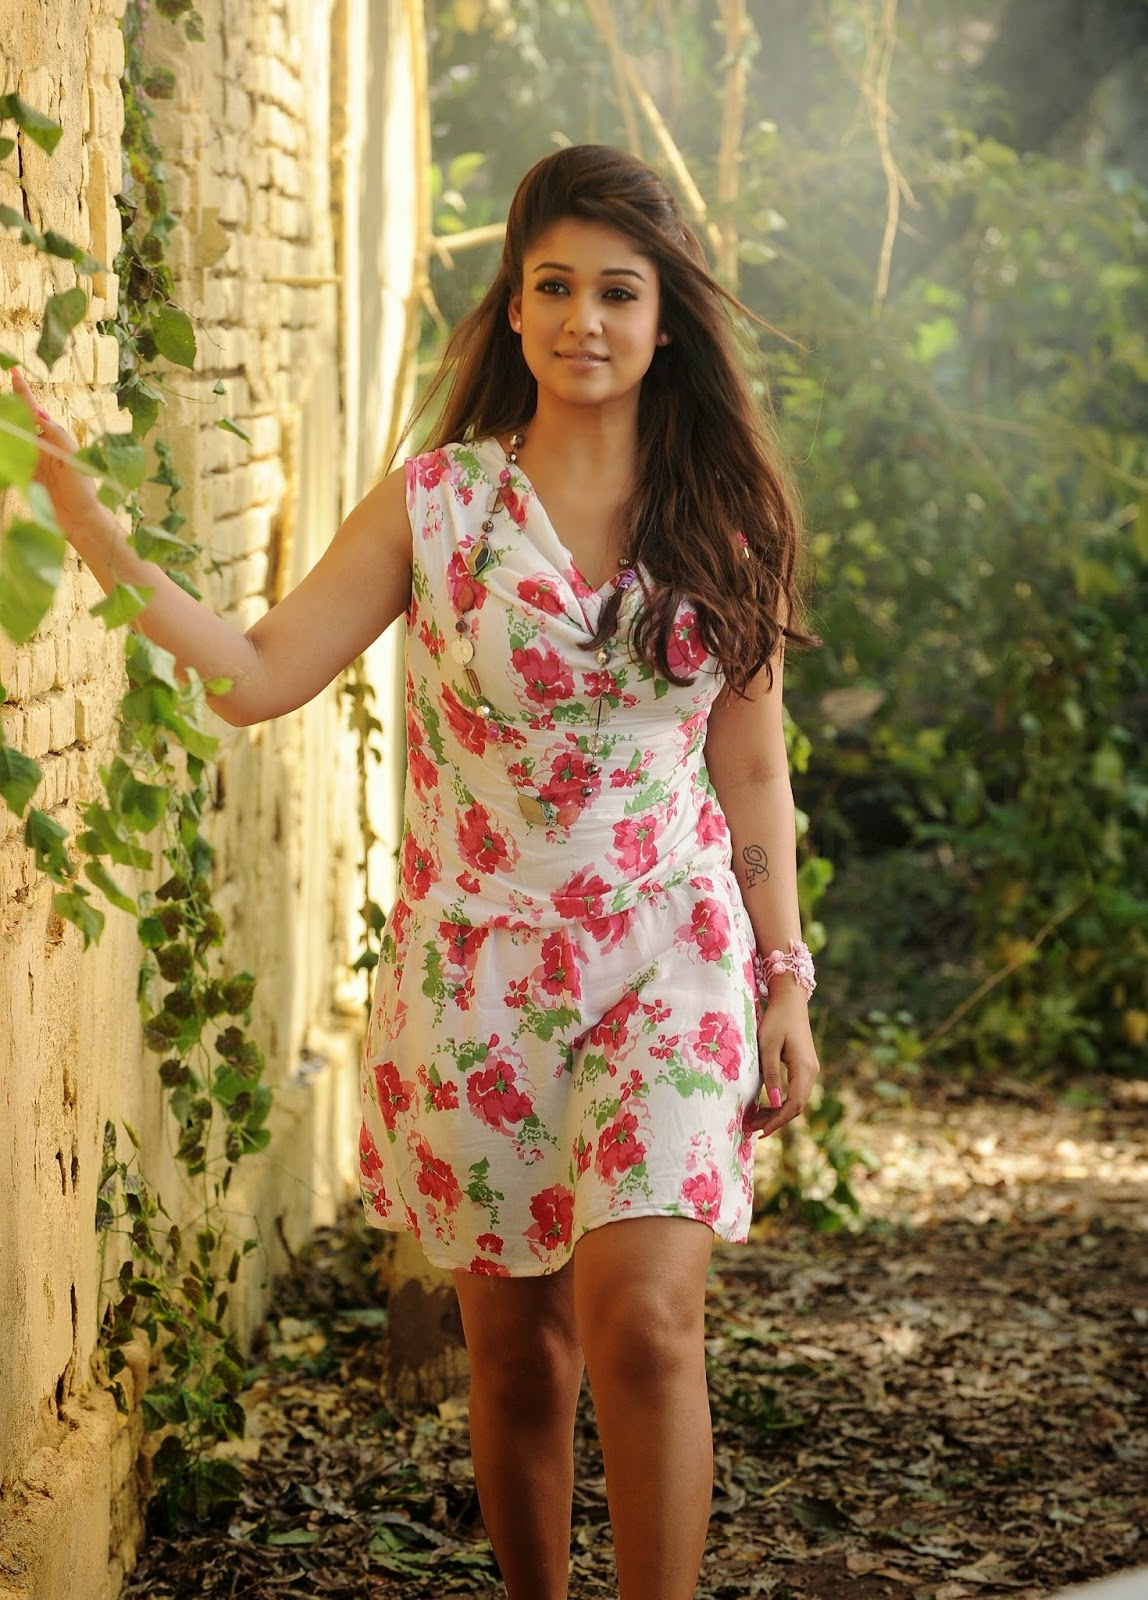 High Quality Bollywood Celebrity Pictures Nayantara -5055